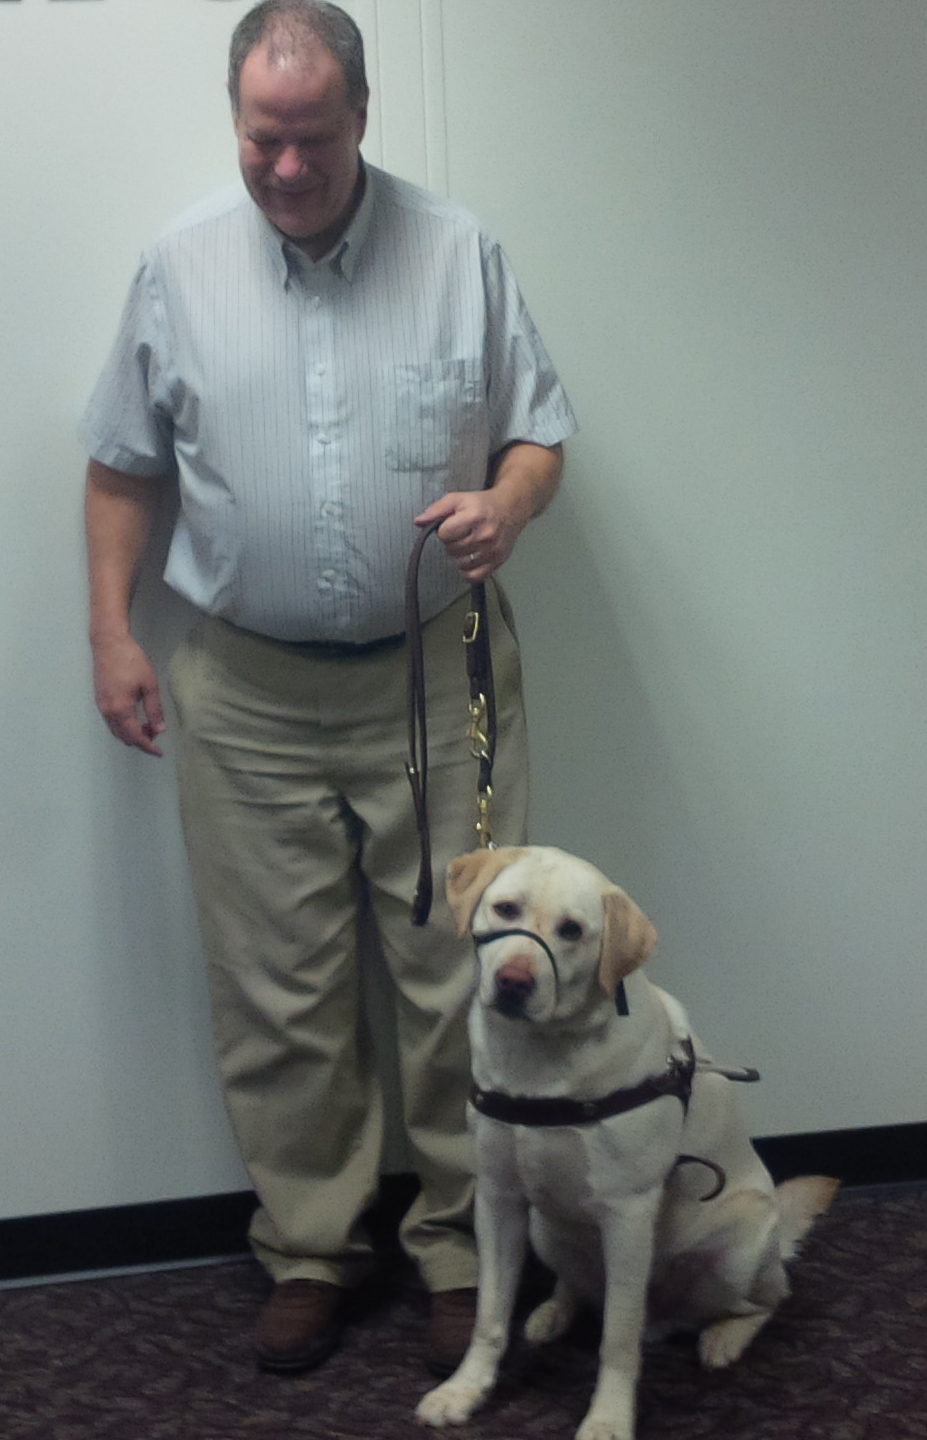 Odie the dog and Brian his handler